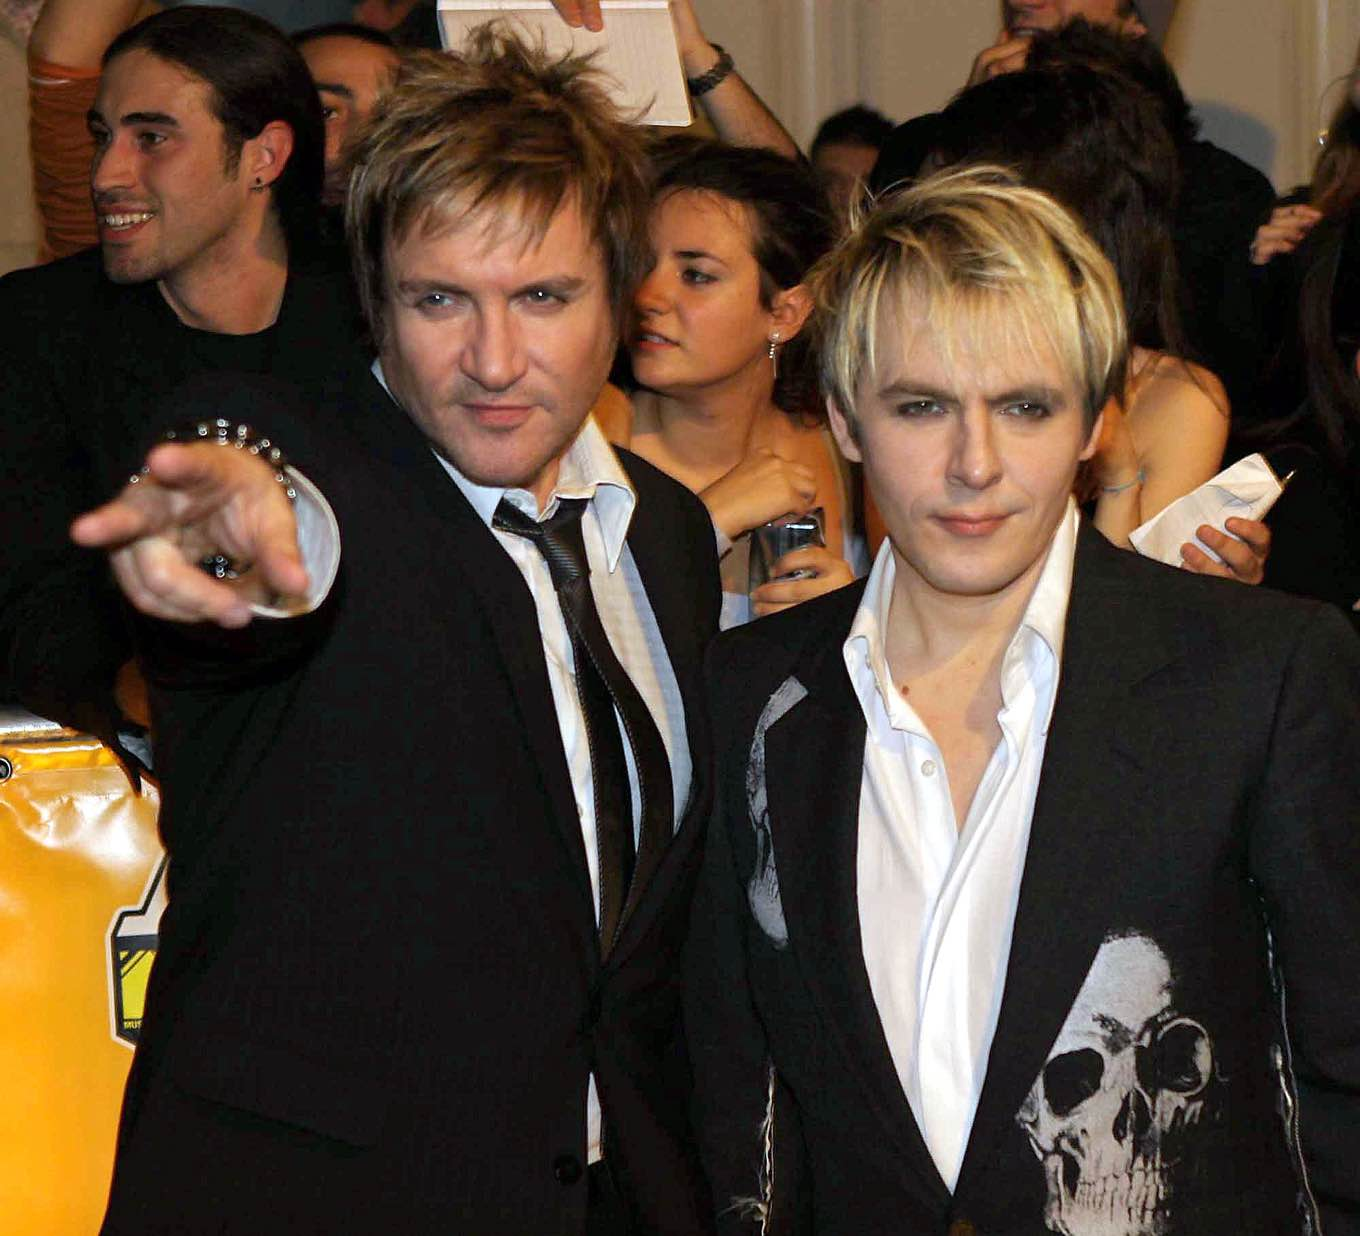 British group Duran Duran arrive to the MTV Europe Music Awards in Rome, Thursday, Nov. 18, 2004. (AP Photo/Alessandra Tarantino)